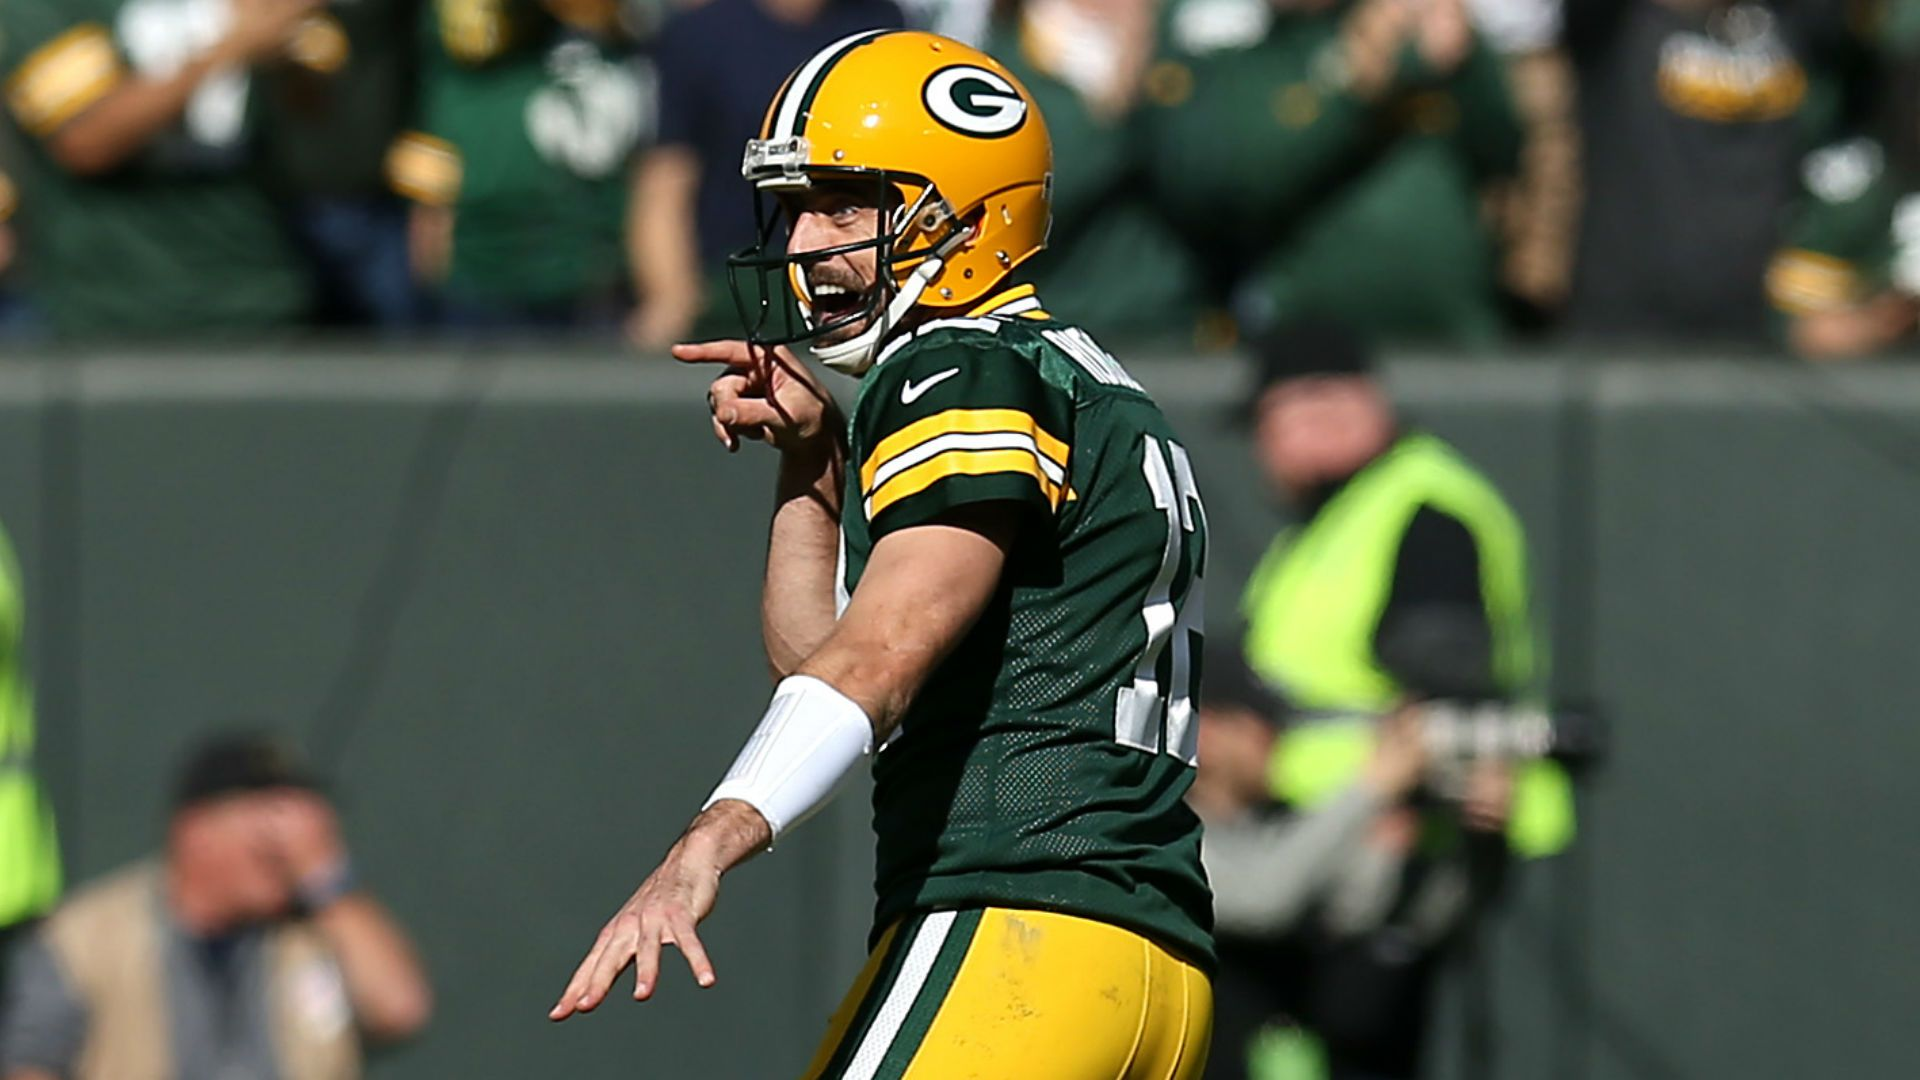 Nfl Week 7 Sunday Huddle Aaron Rodgers Puts Up Big Numbers In Packers Win 49ers Remain Undefeated Nfl Week Devonta Freeman Nfl